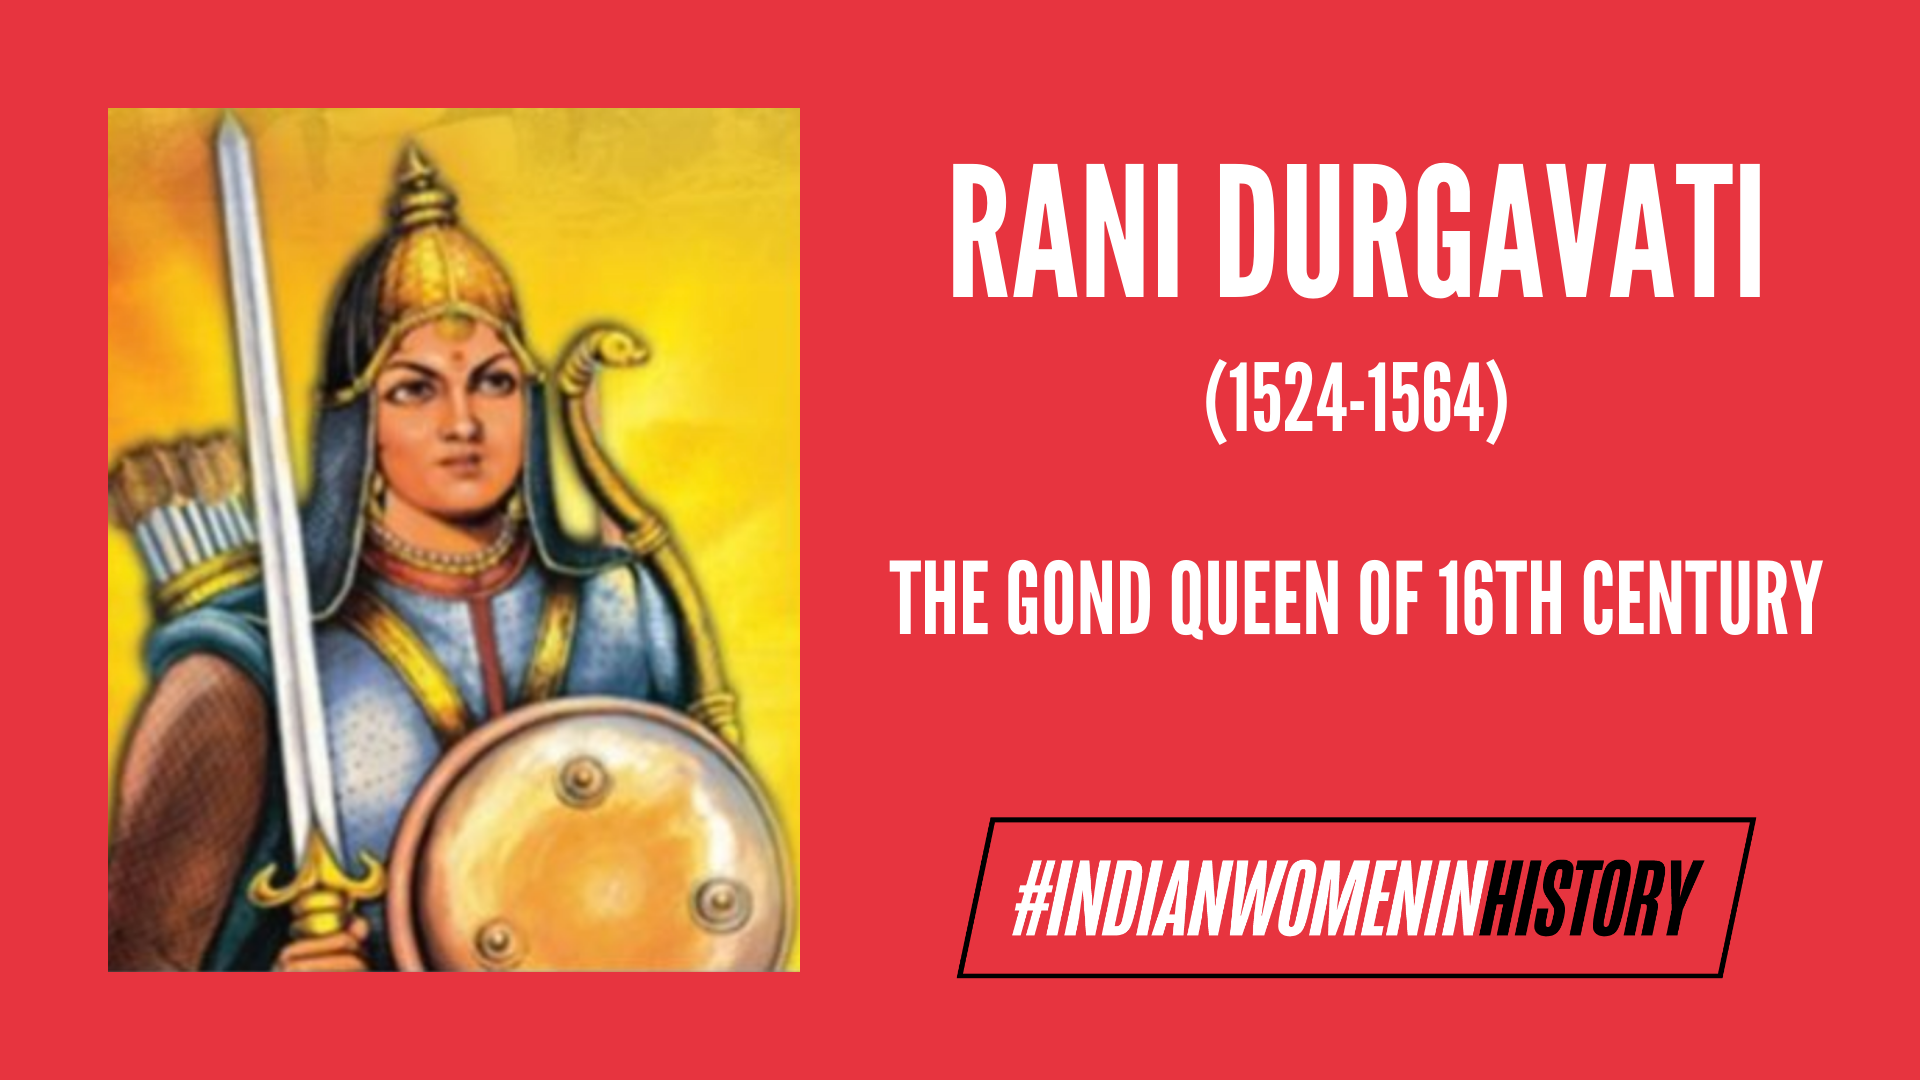 Rani Durgavati: The Valiant Gond Queen